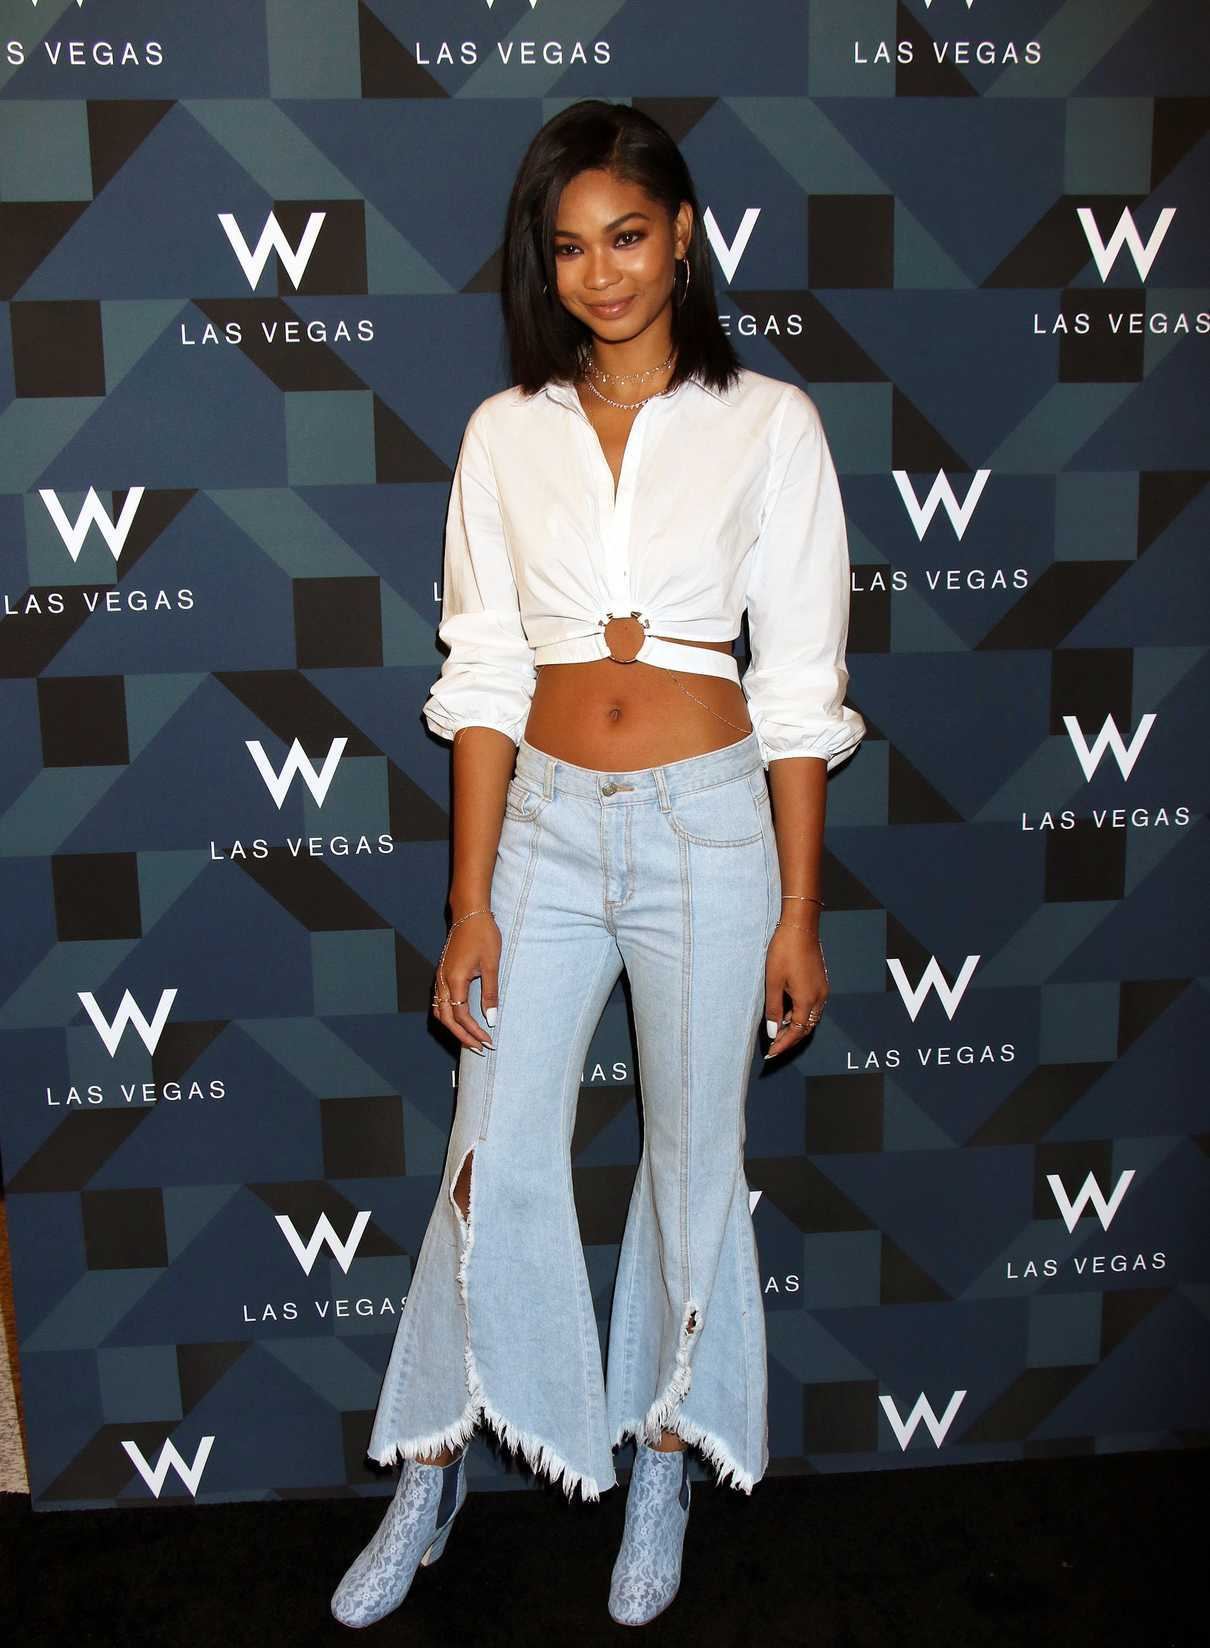 Chanel Iman at the W Las Vegas Hosts Grand Opening Celebration in Las Vegas 03/31/2017